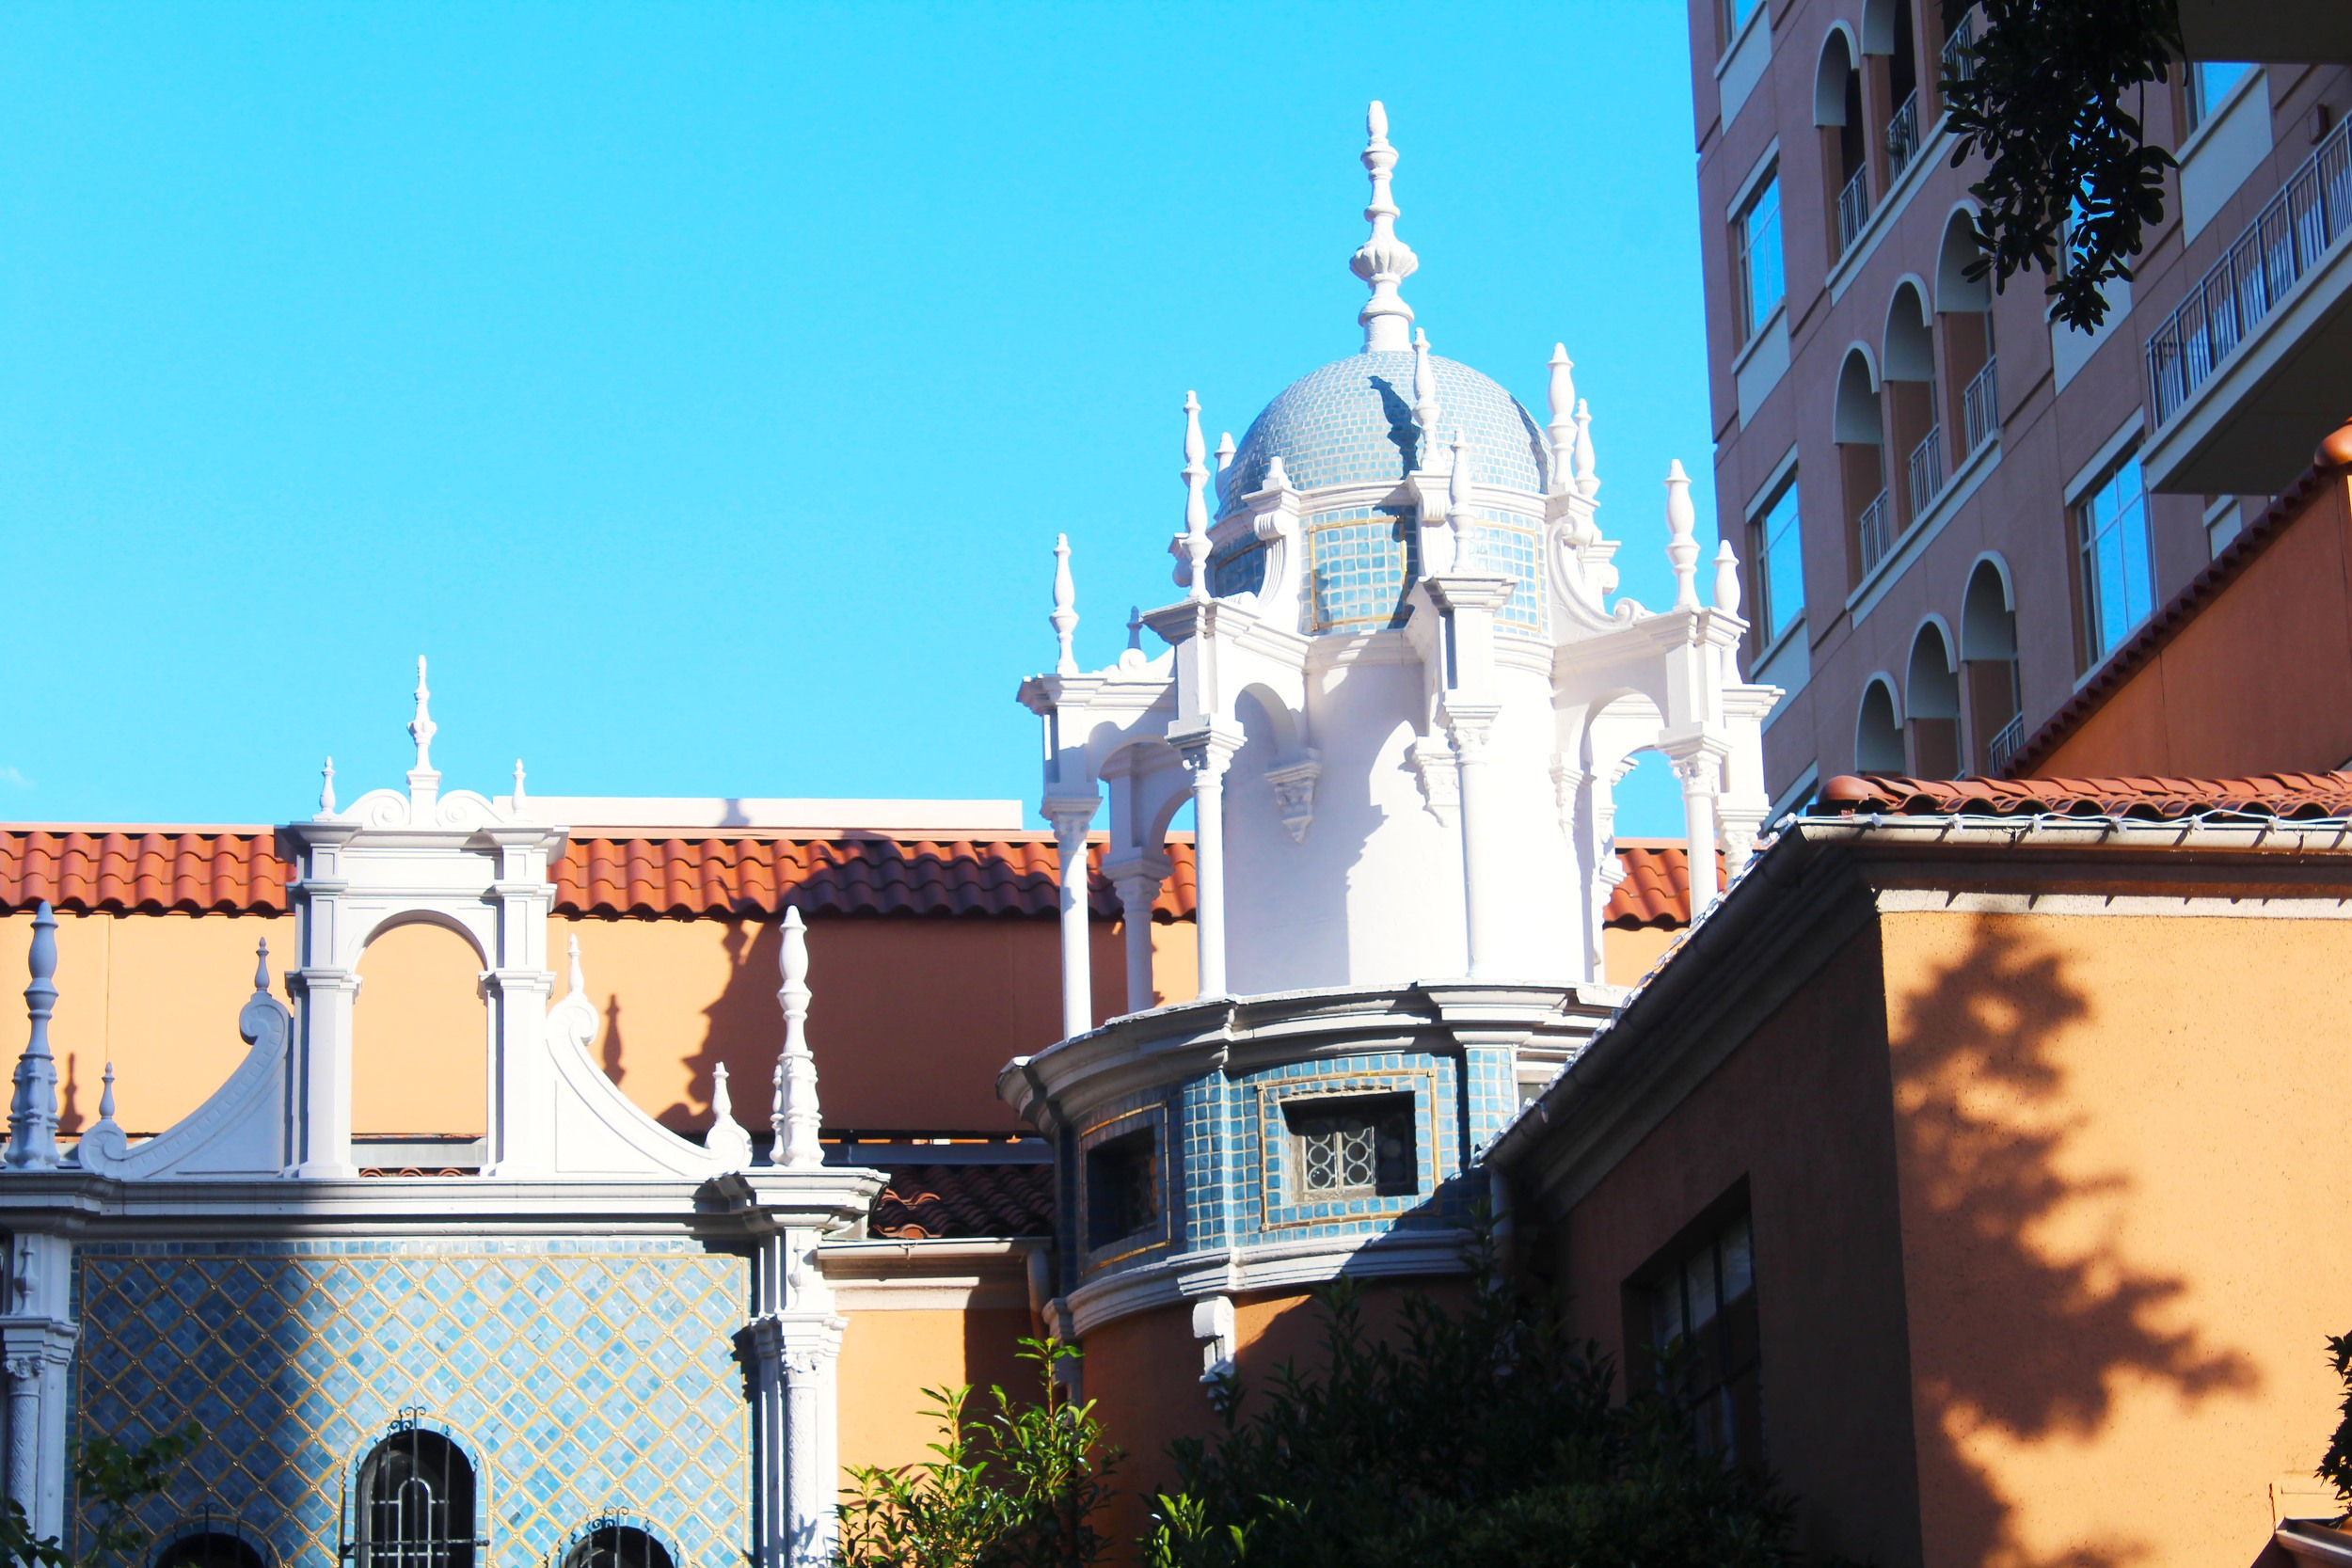 Glimpse of the Rosewood Mansion exterior -- gorgeous architecture!